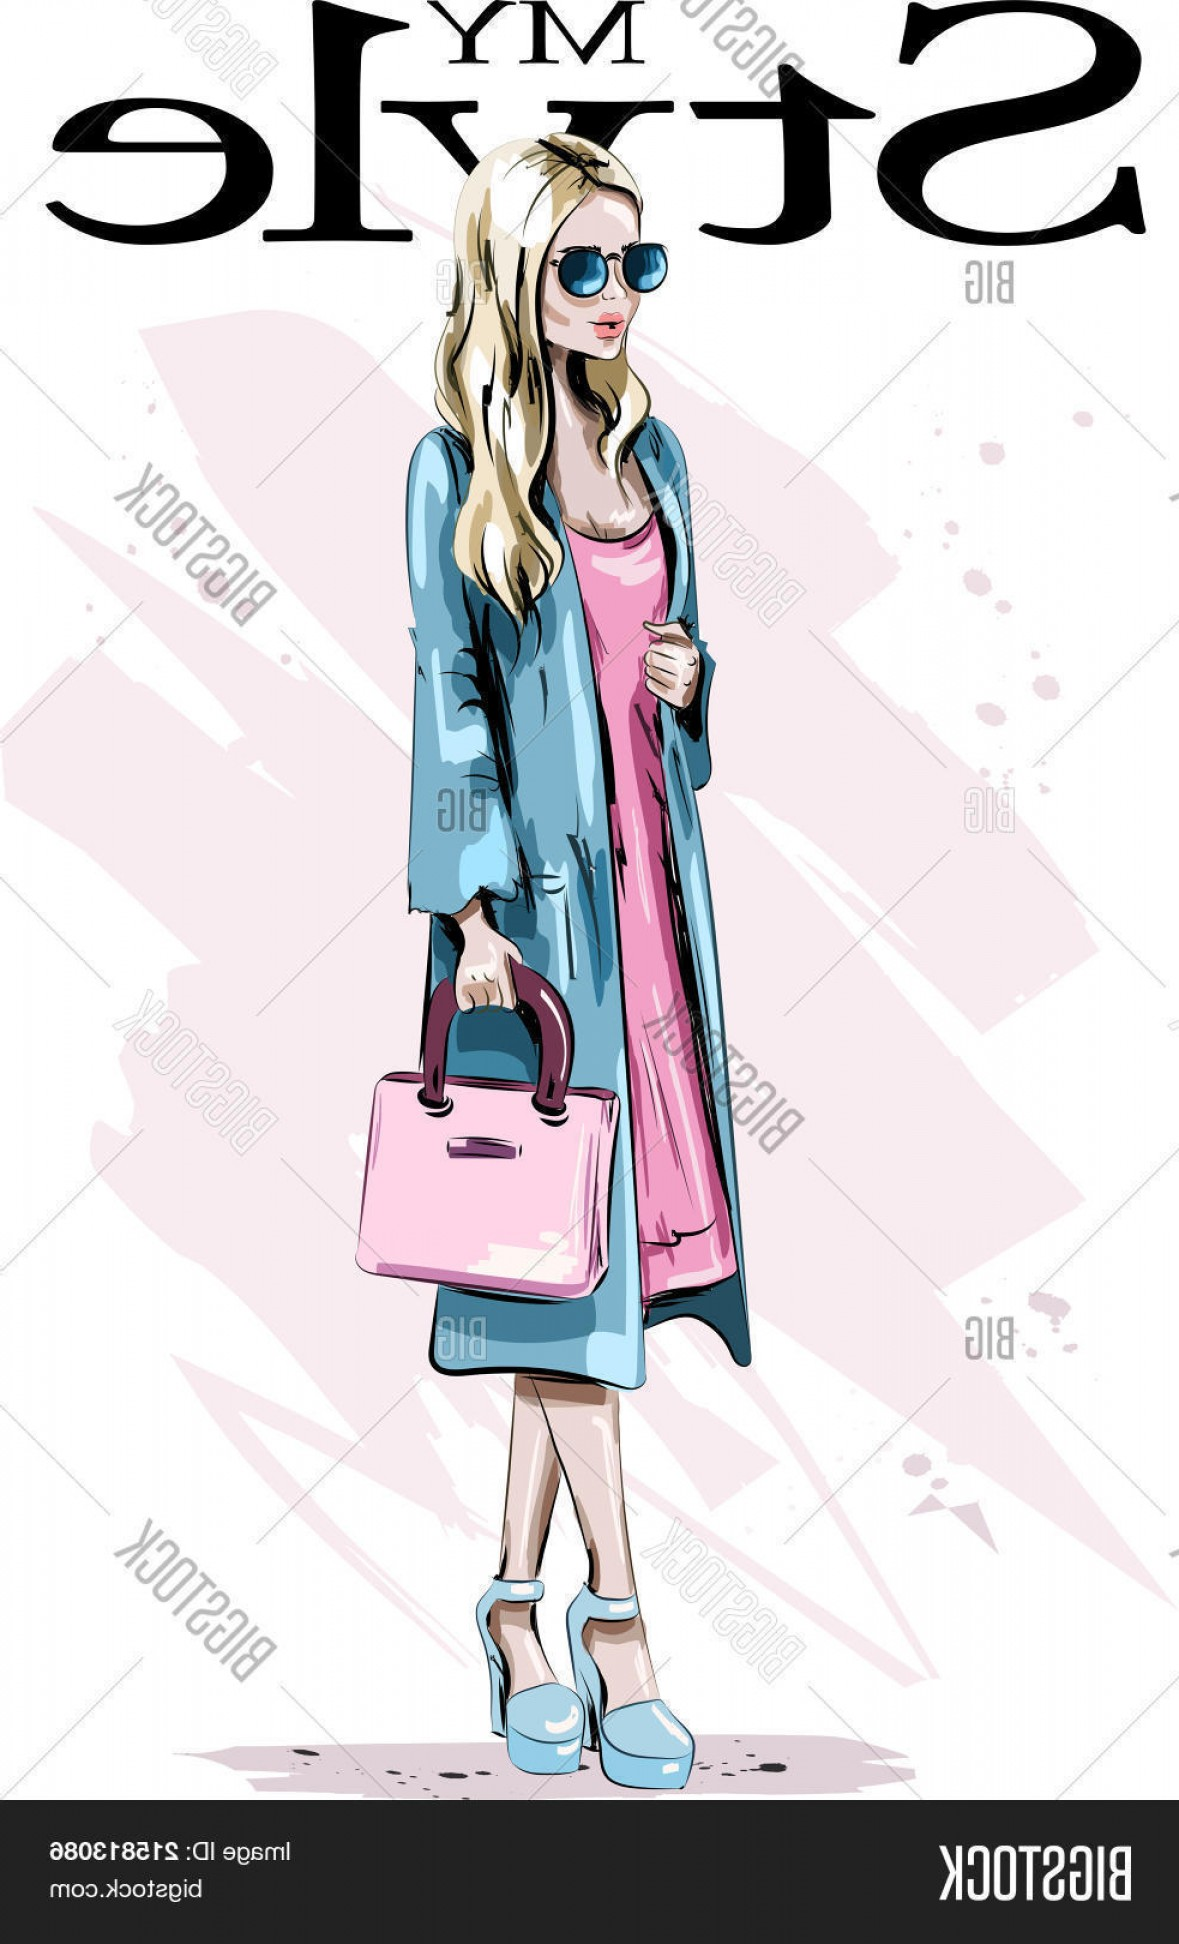 Vector Model Poses: Stock Vector Fashion Model Posing Beautiful Blond Hair Woman With Bag Stylish Woman In Coat Sketch Vector Illustration